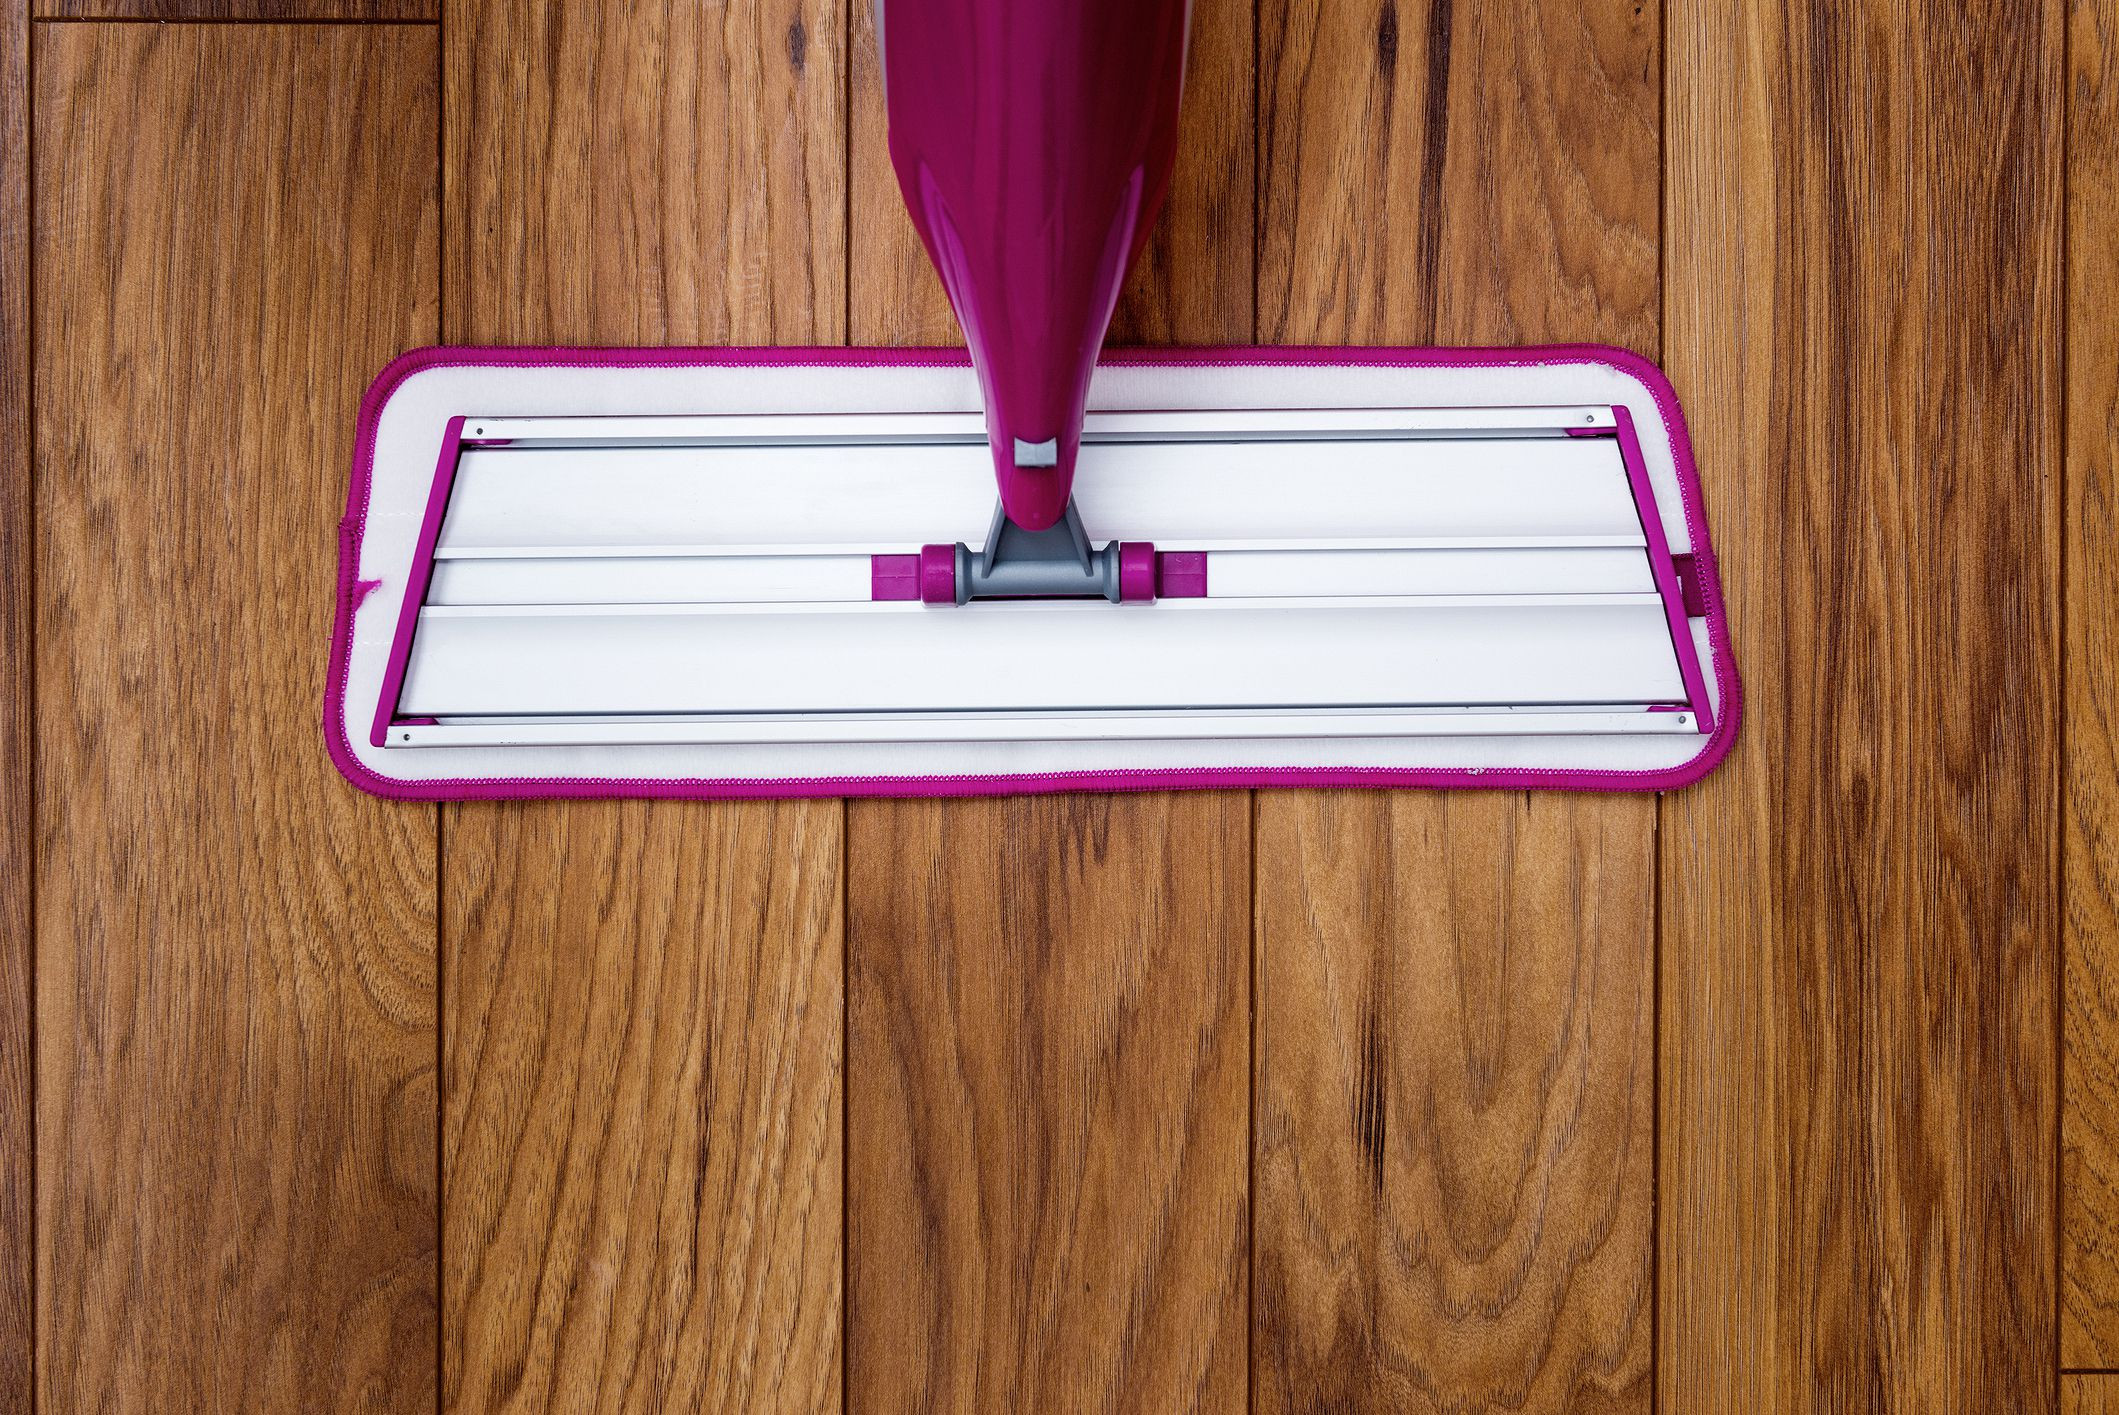 Hardwood Floor Protector Pads Of the Best Way to Clean Laminate Floors within Mop Gettyimages 510300933 586f0aa15f9b584db33595ee